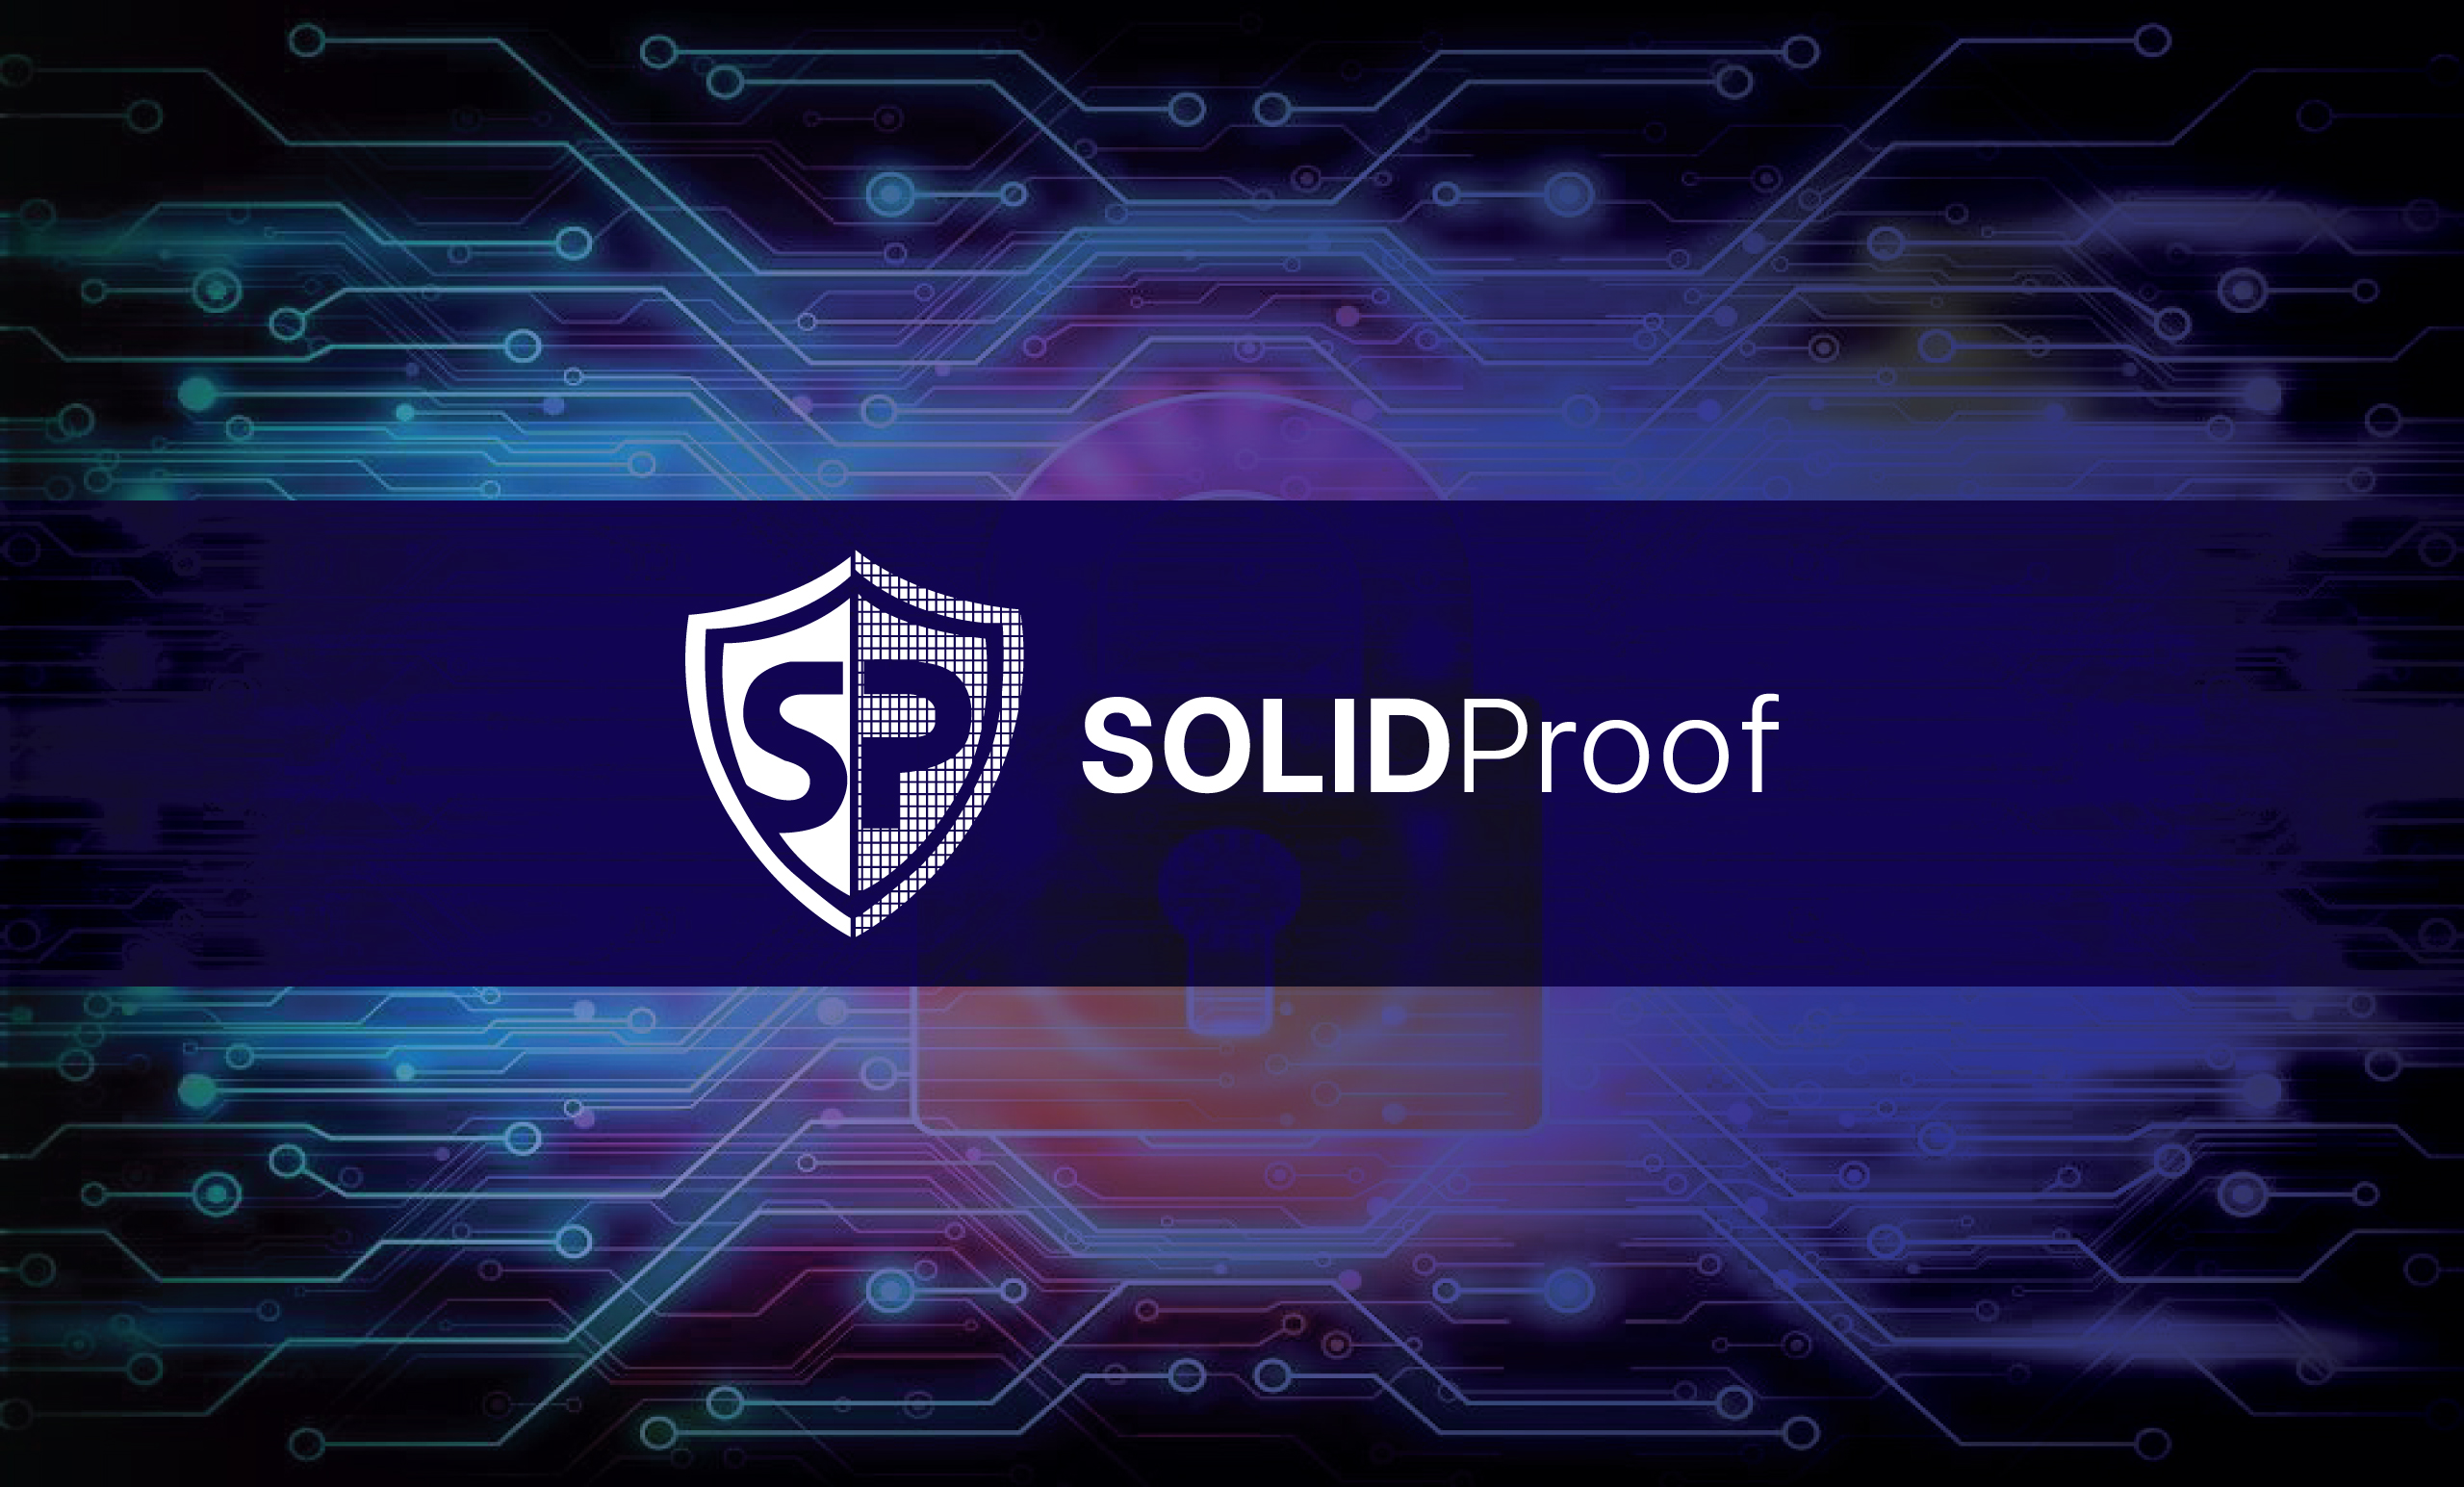 SolidProof Joins Forces with Unicrypt as More Projects Board Its Network